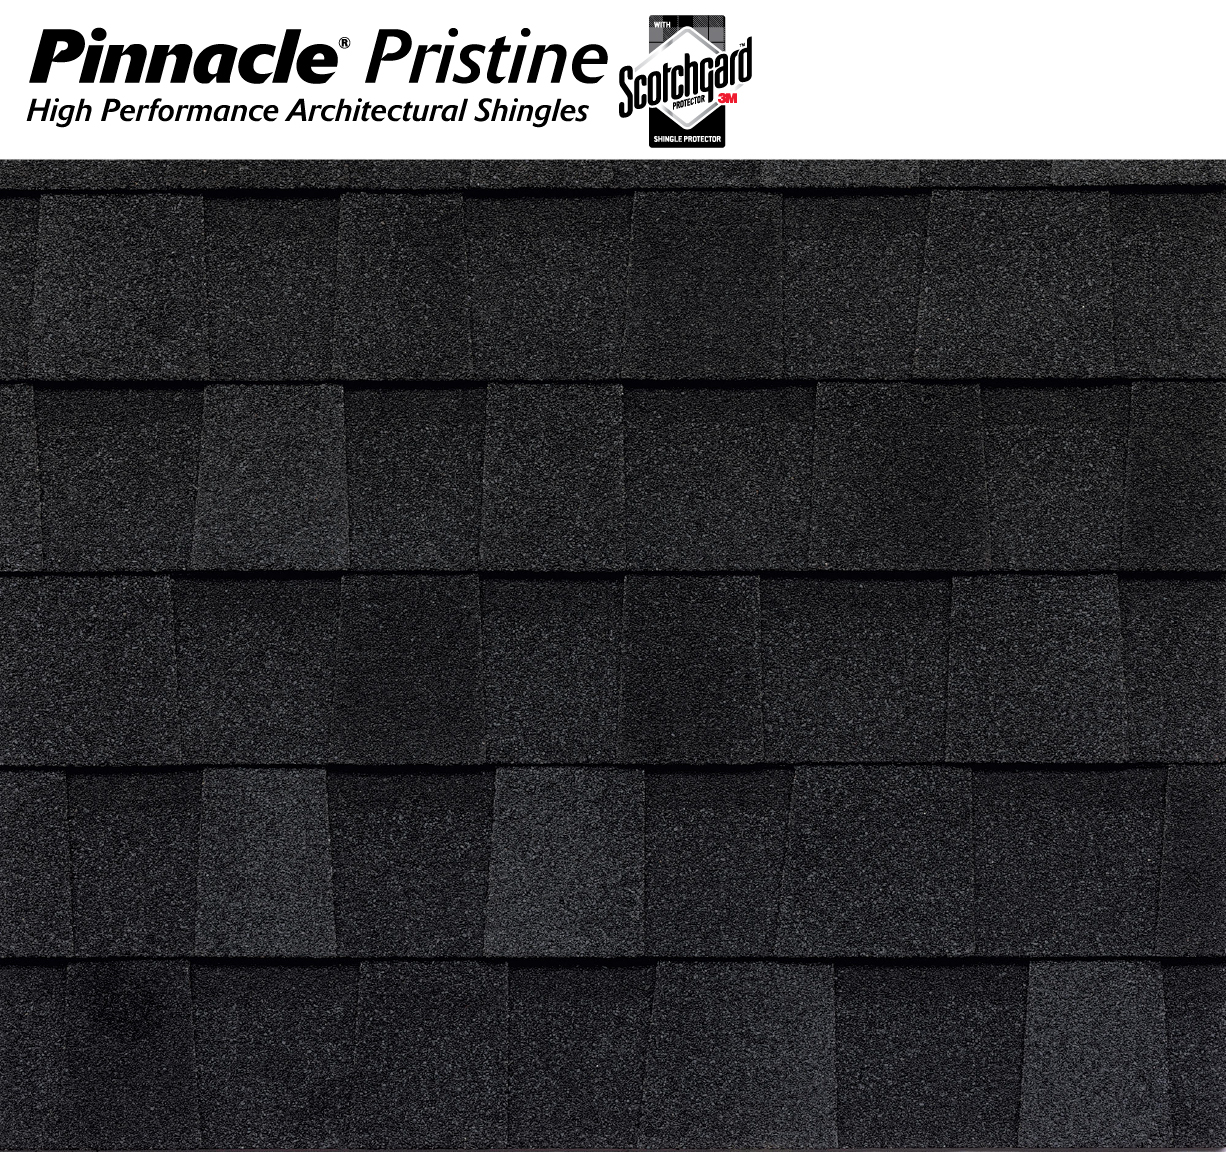 Pinnacle Scotchgard Pristine Black